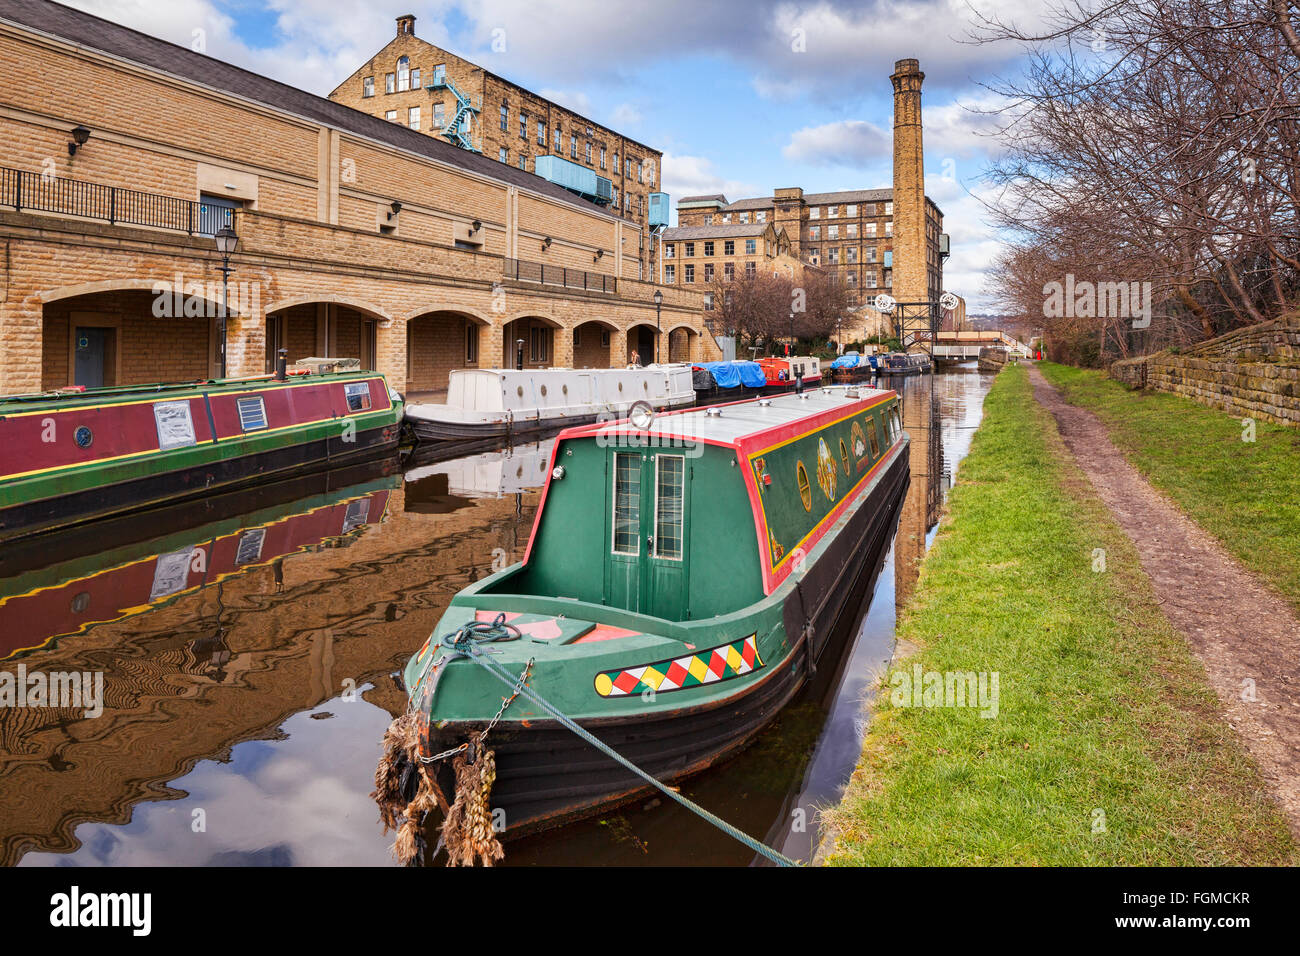 Narrowboats on the Huddersfield Broad Canal in winter, West Yorkshire, England, UK - Stock Image